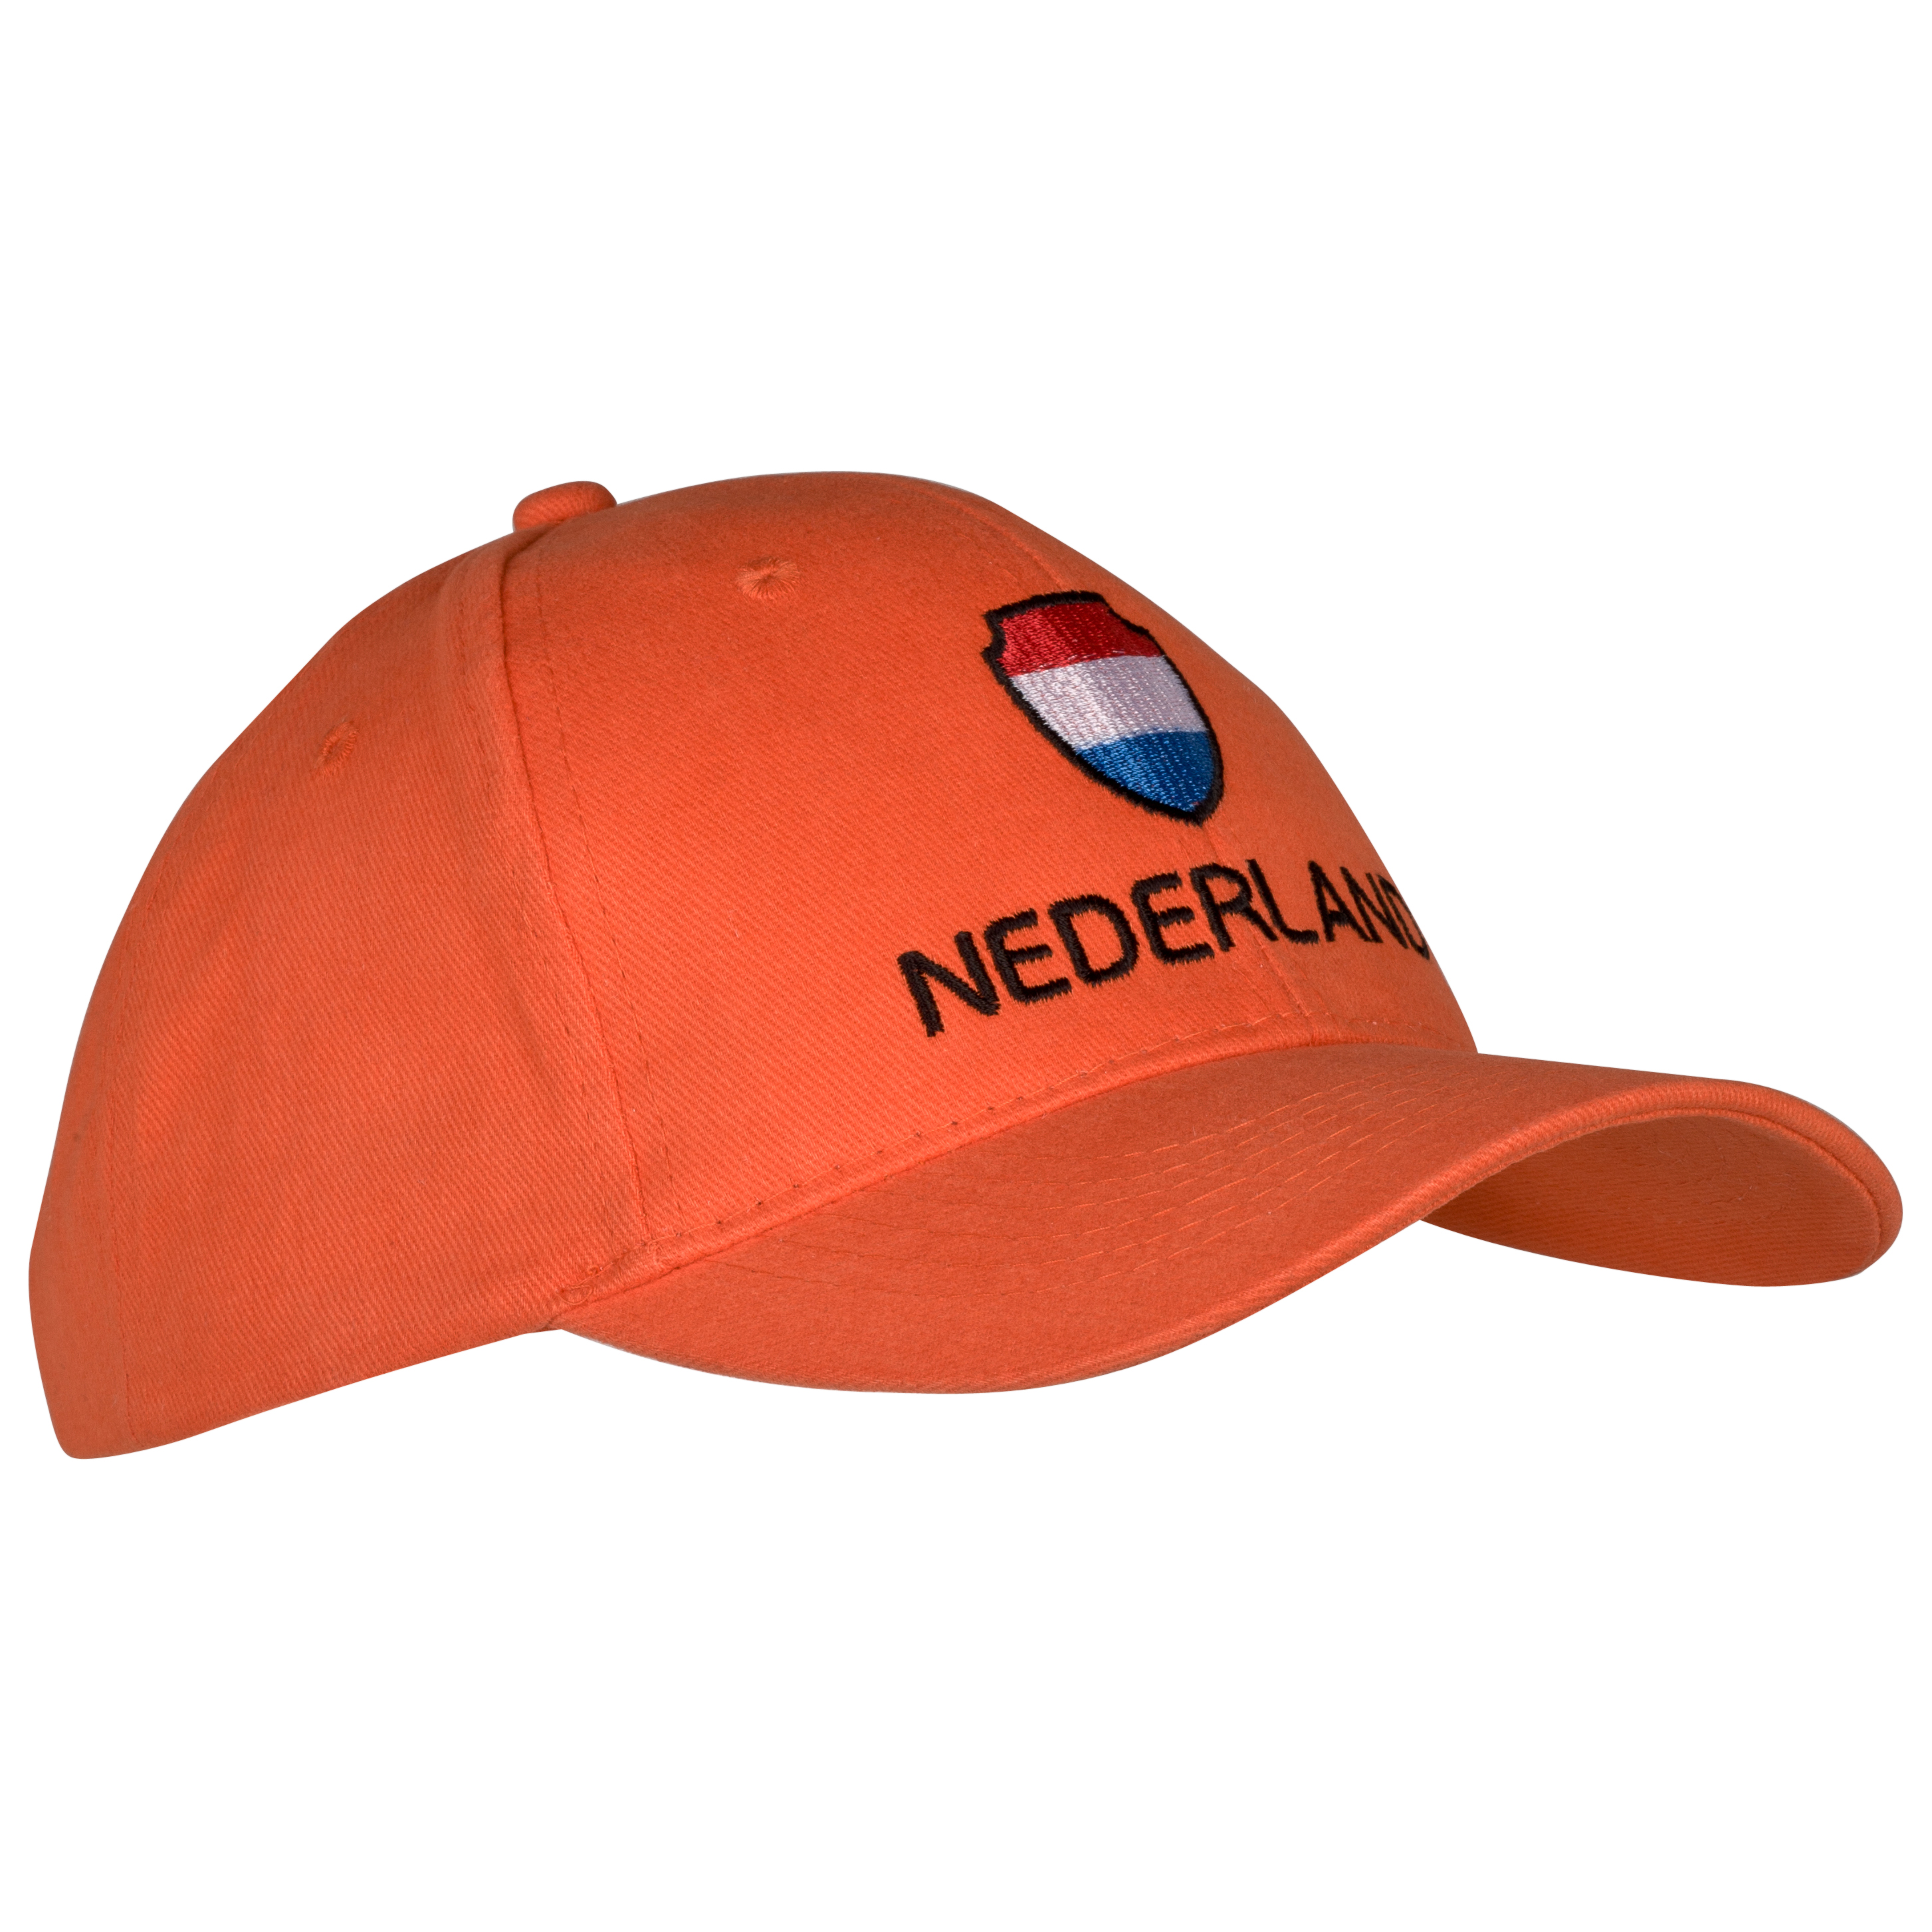 Holland Cap - Orange/Black